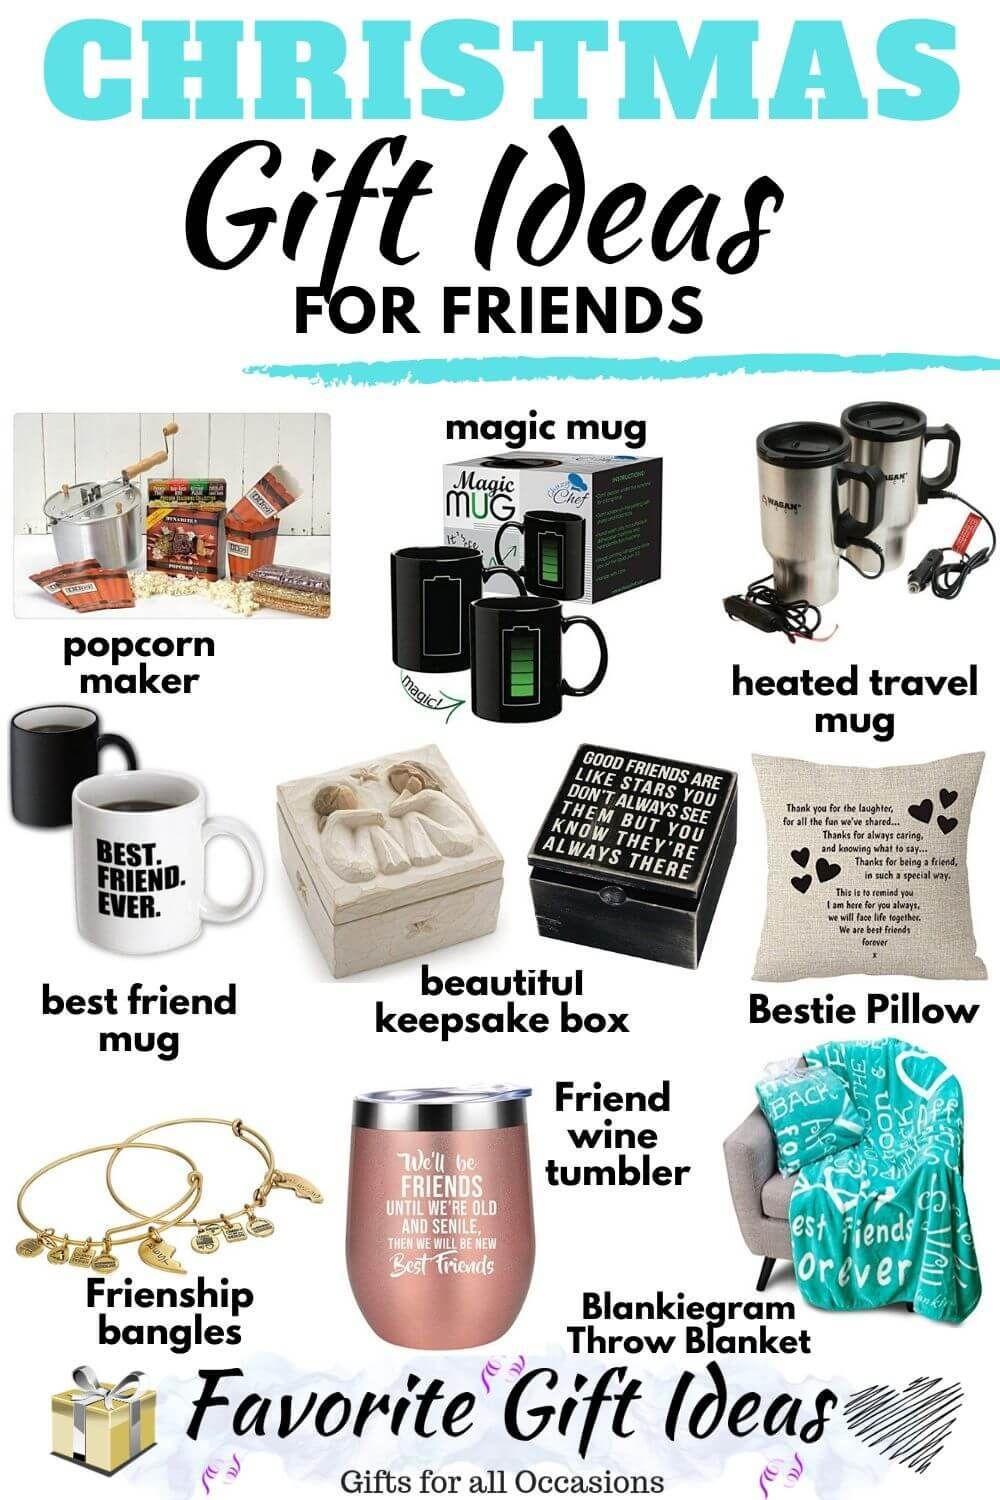 20 Christmas Gift Ideas For Friends 2019 Best Friend Gifts Best Friend Christmas Gifts Christmas Gifts For Friends